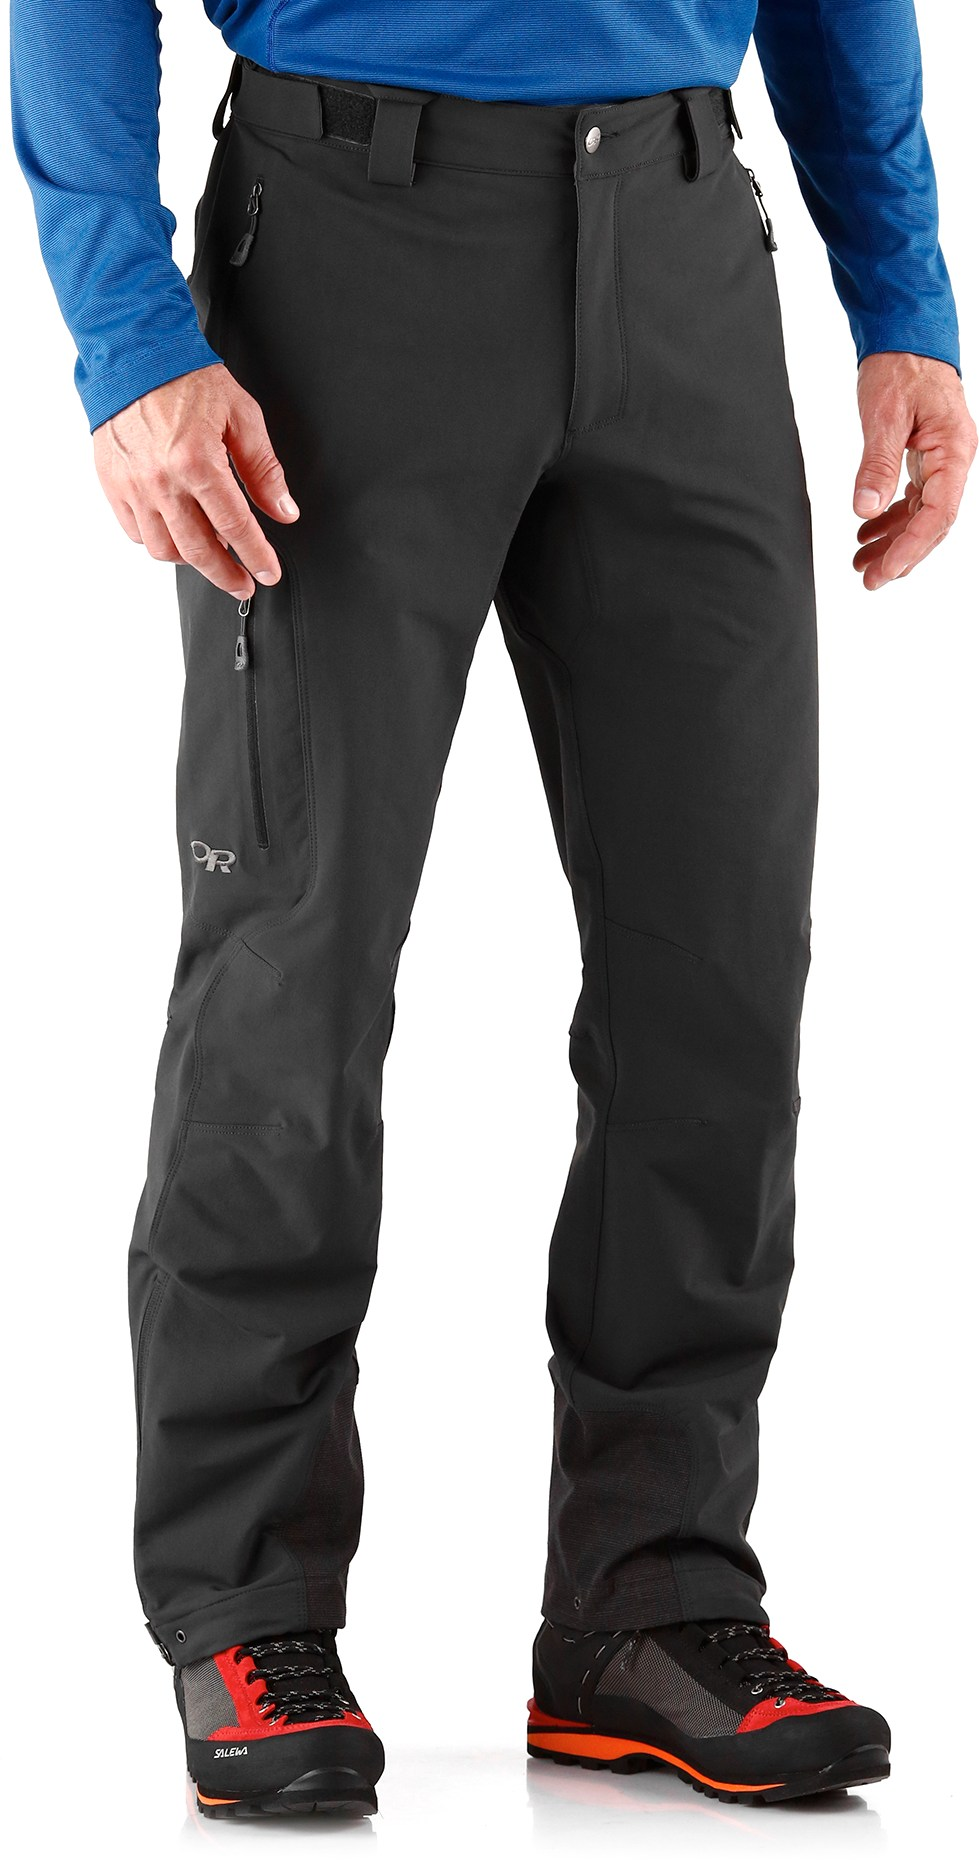 Outdoor Research Cirque Softshell Pants - Men's